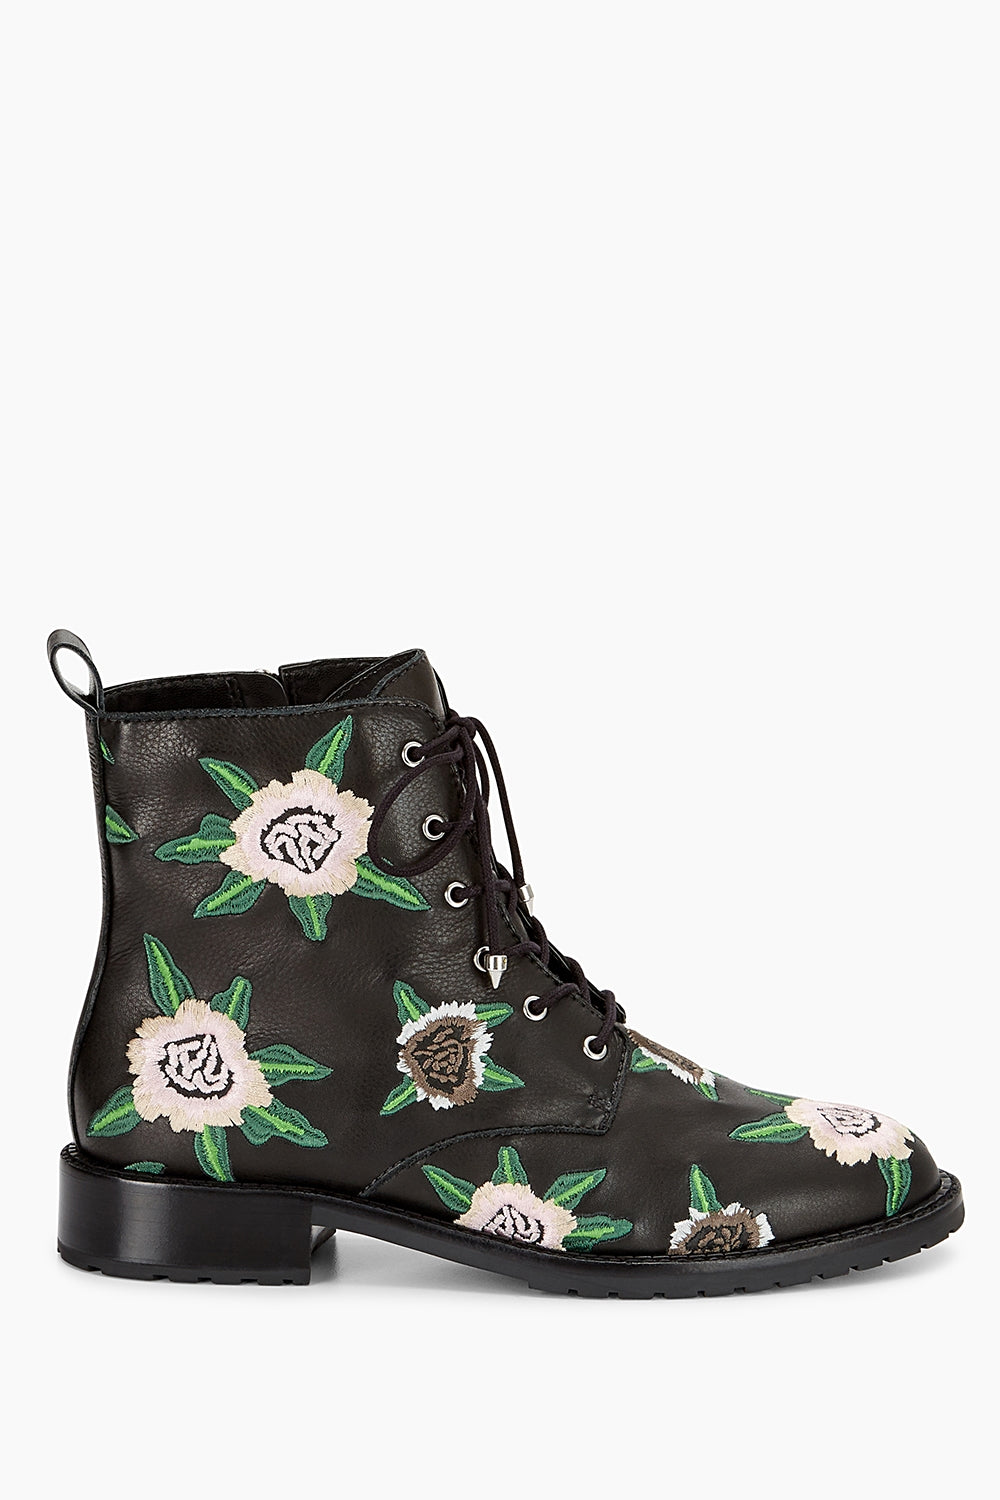 Rebecca Minkoff Gerry Embroidered Lace-Up Boot RN0XNEL